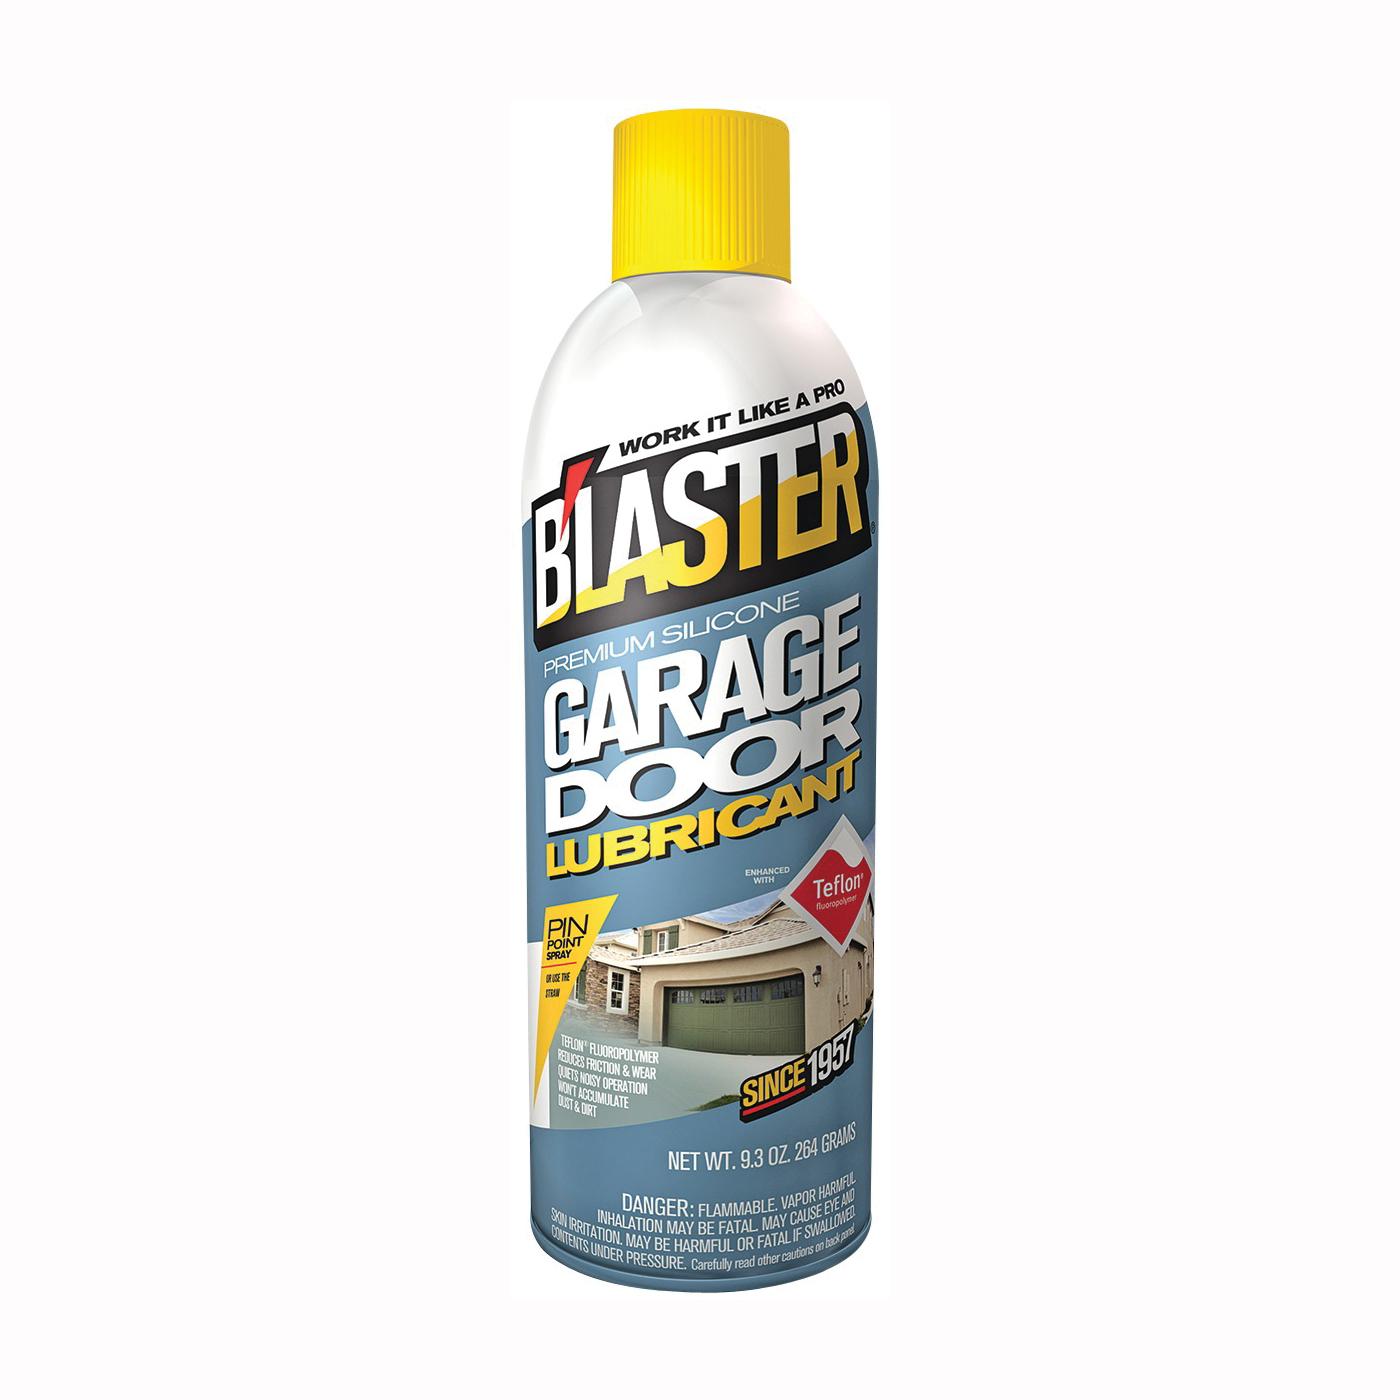 Picture of B'laster 16-GDL Lubricant, 9.3 oz Package, Aerosol Can, Liquid, Mild Aliphatic